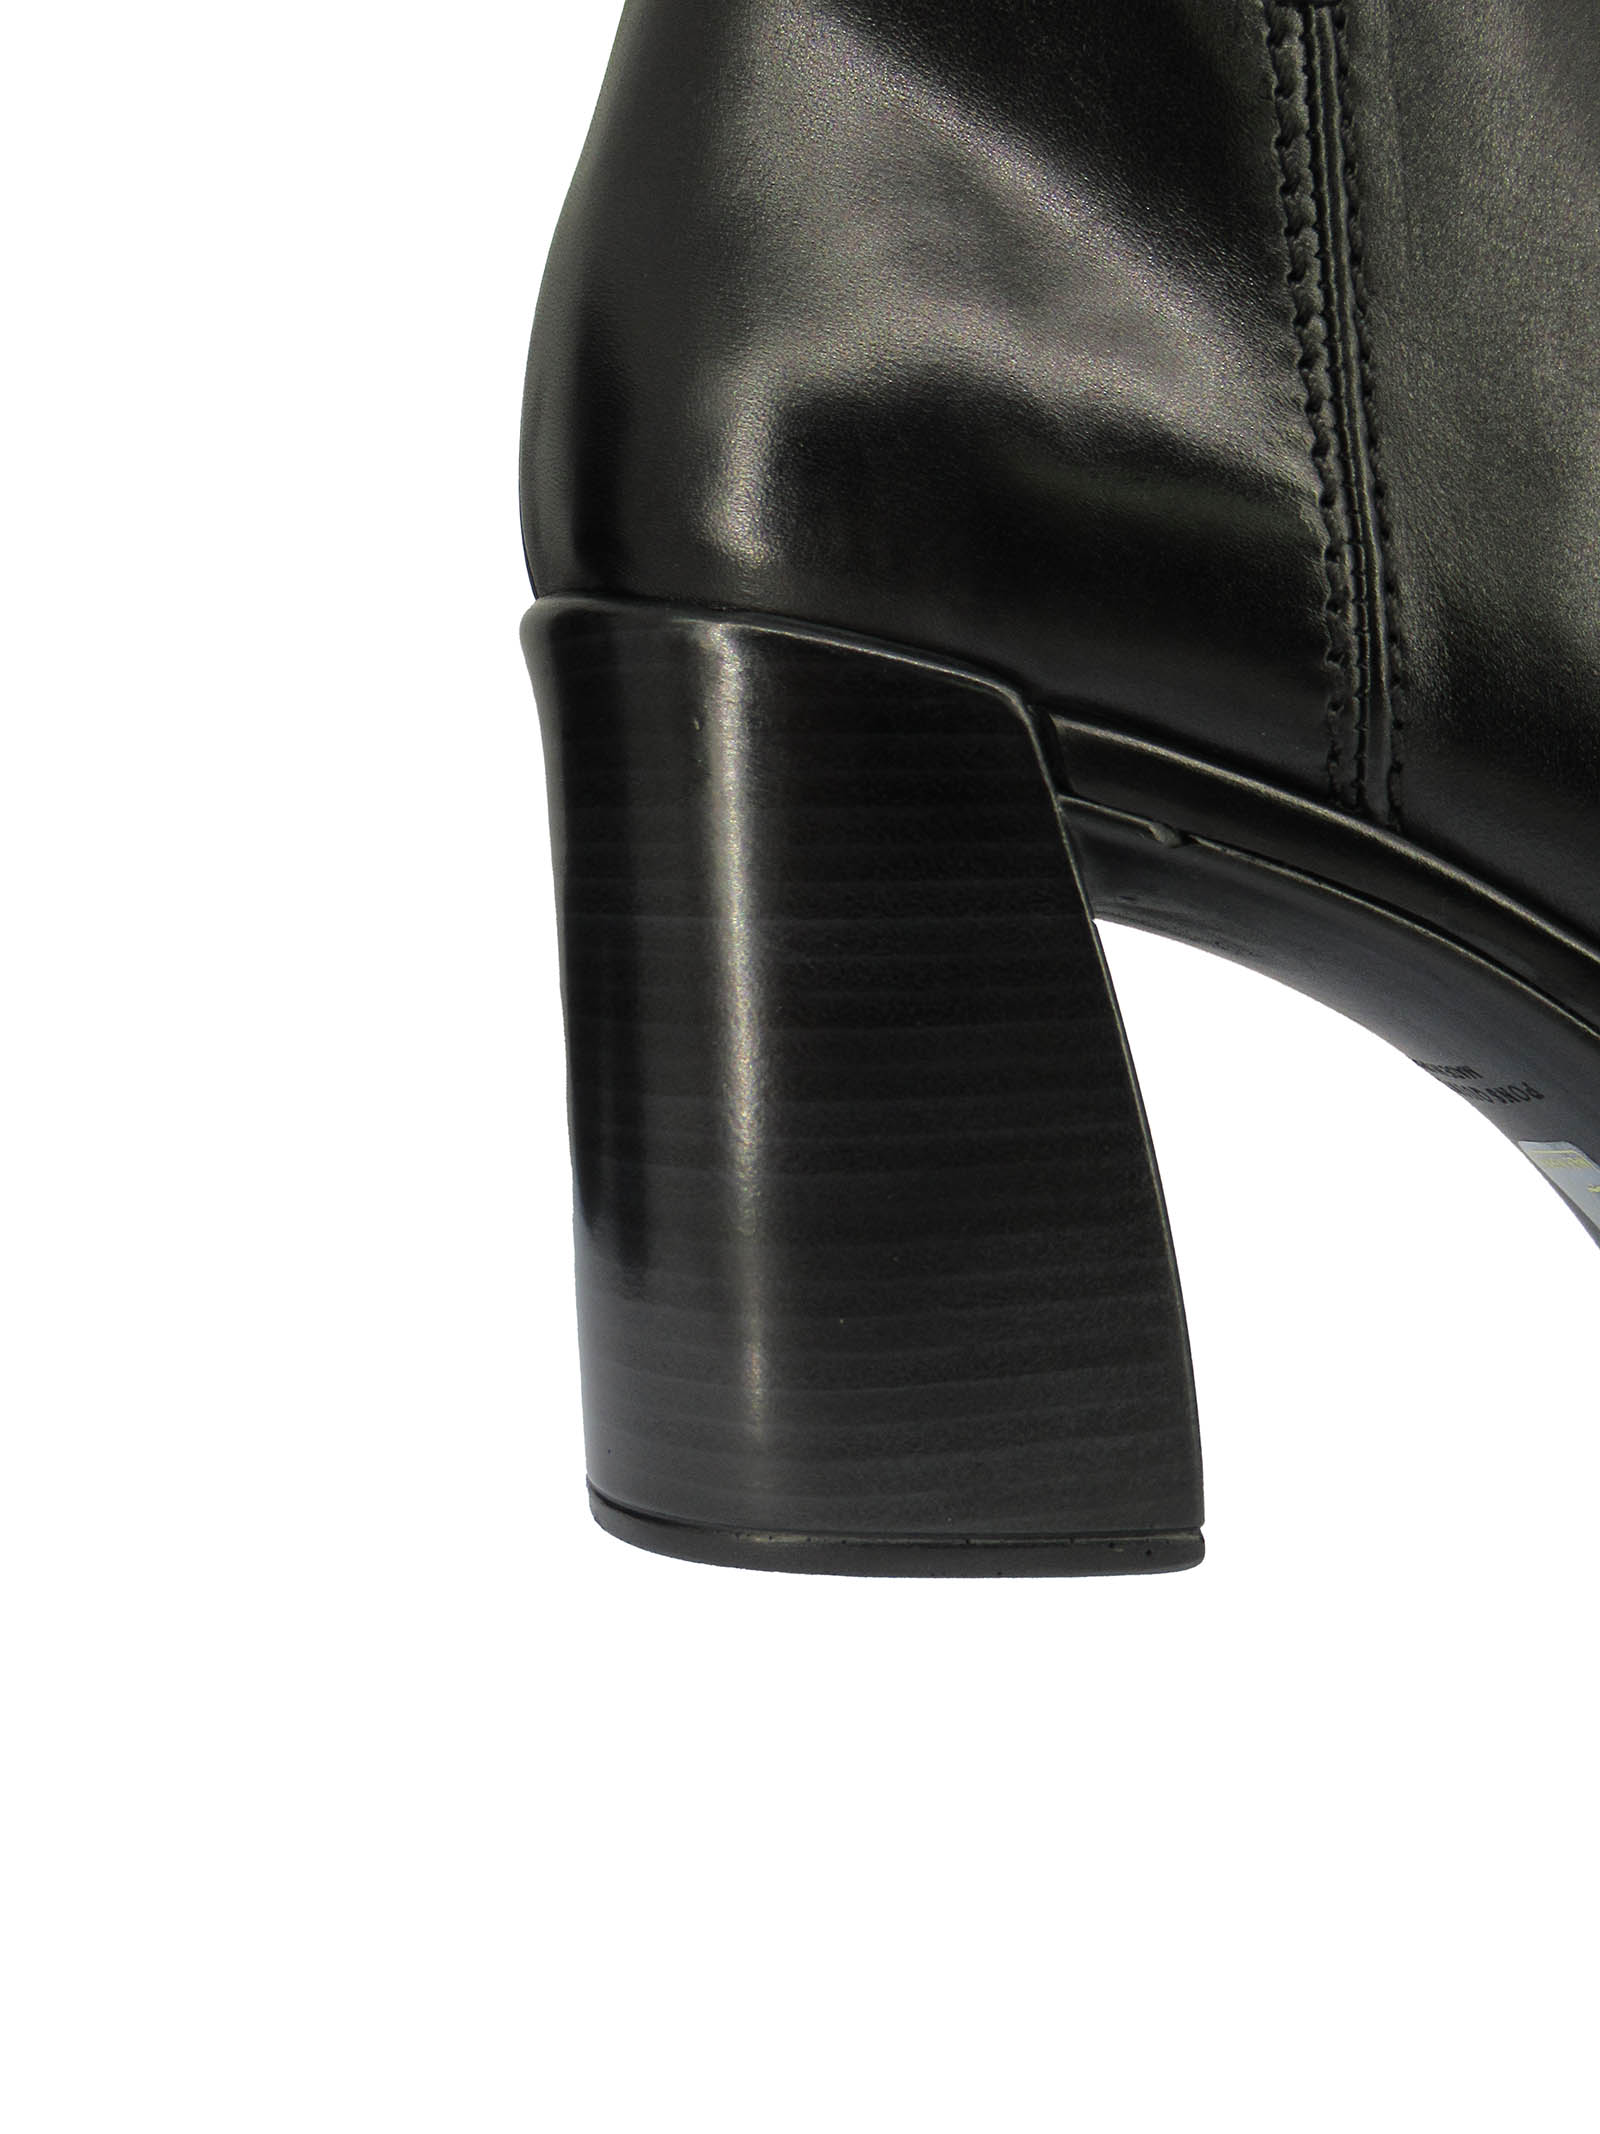 Women's Shoes Ankle Boots in Black Leather with Lateral Zip and High Heel and Platform Pons Quintana | Ankle Boots | 9557001